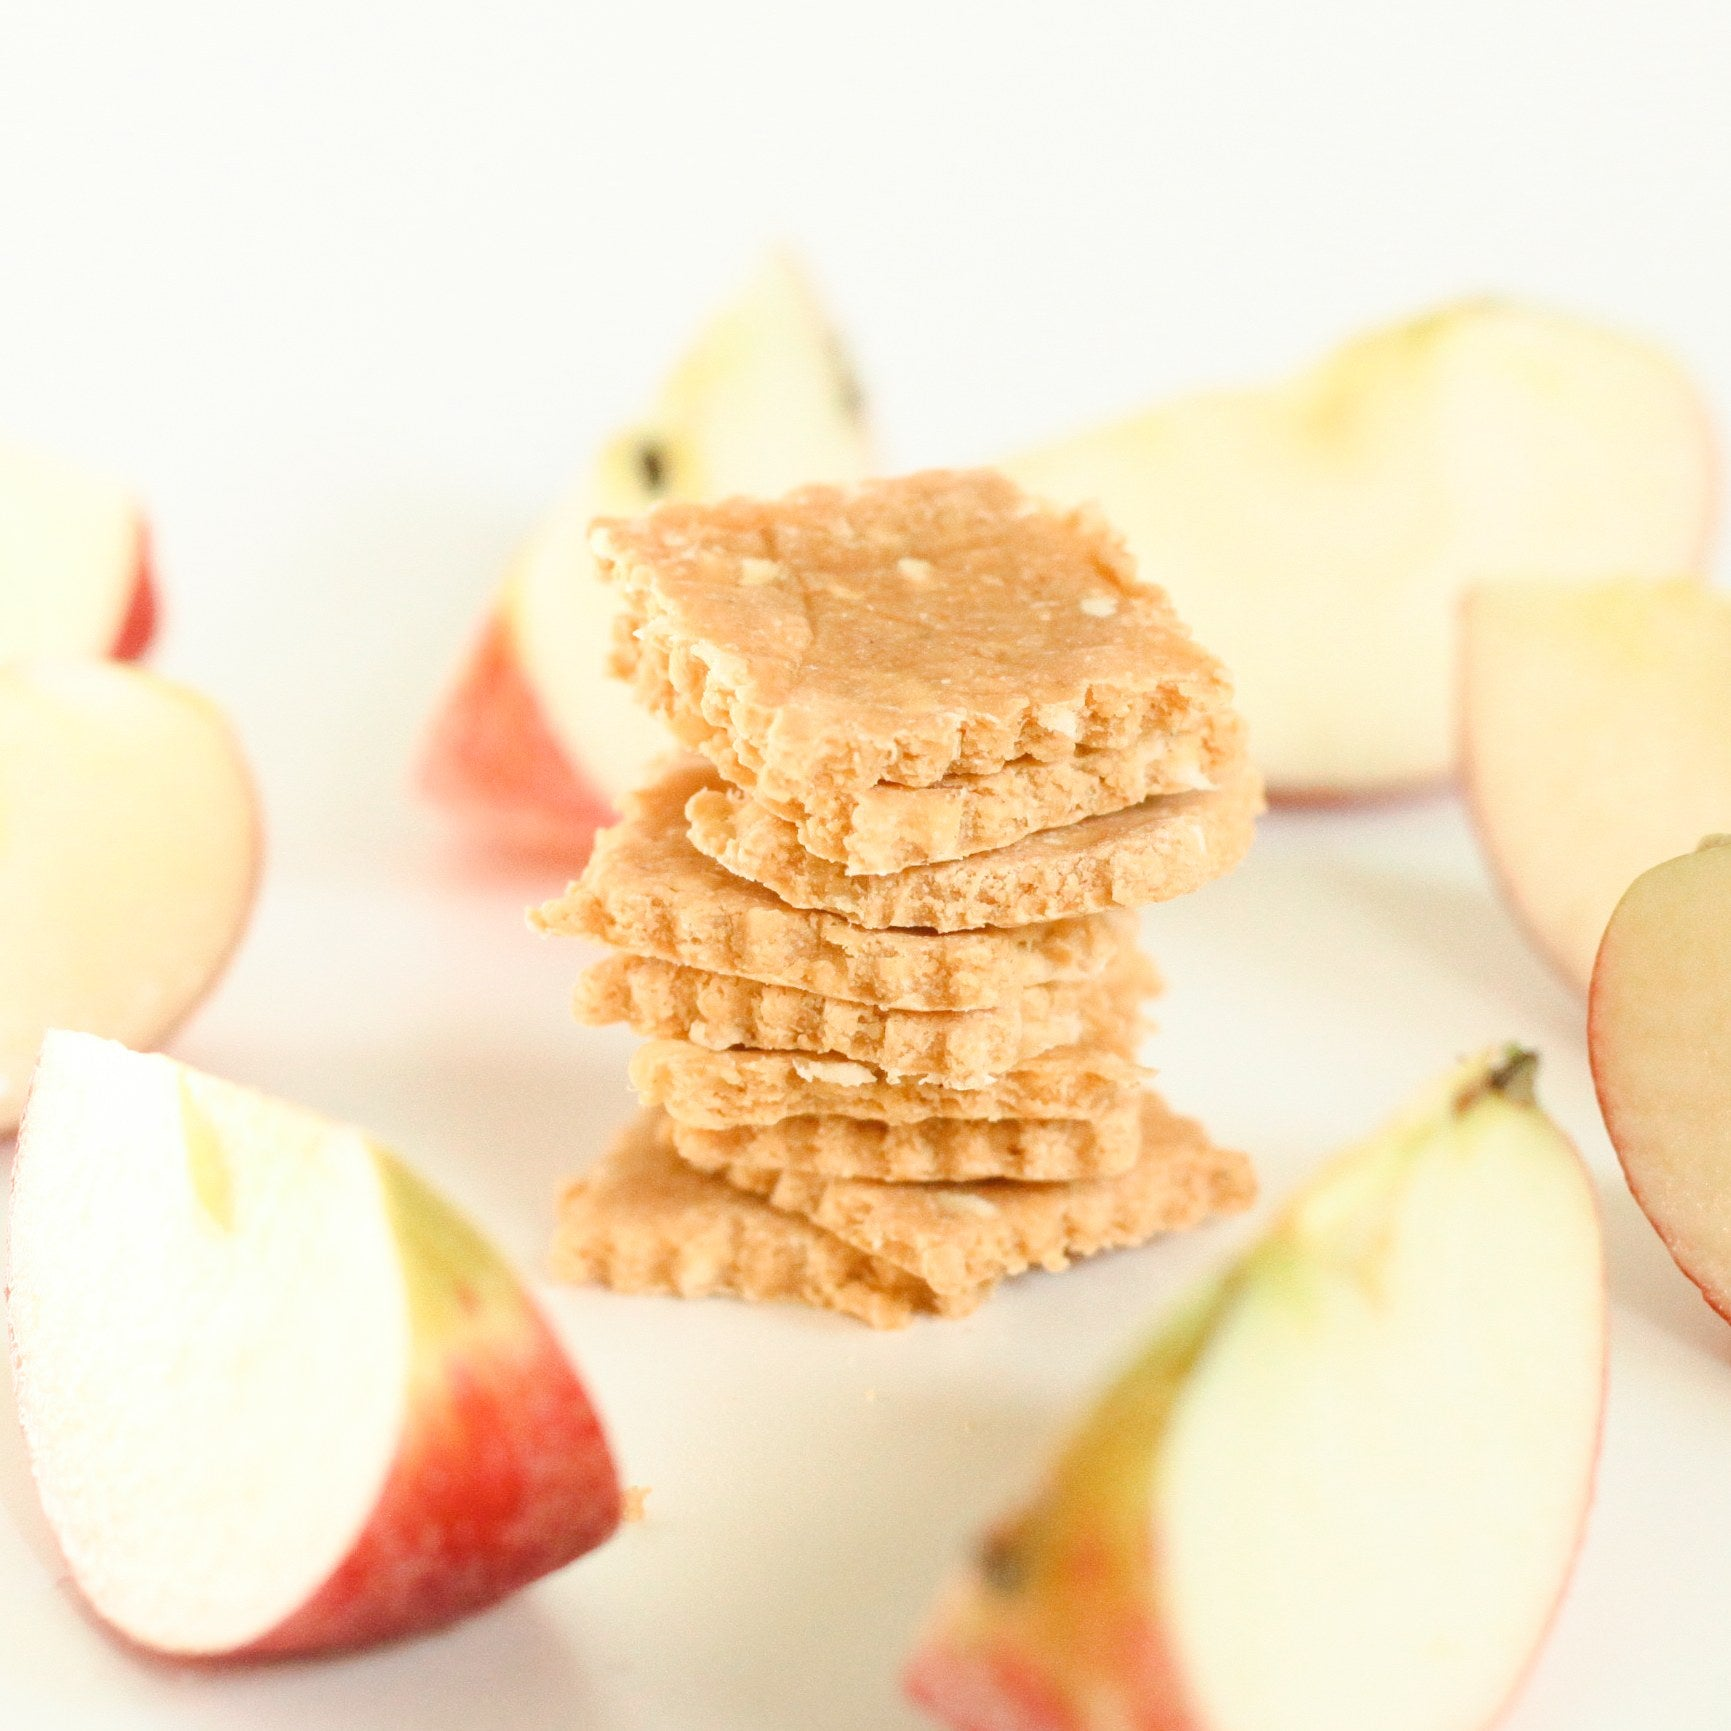 Apple and Cheese Cracker